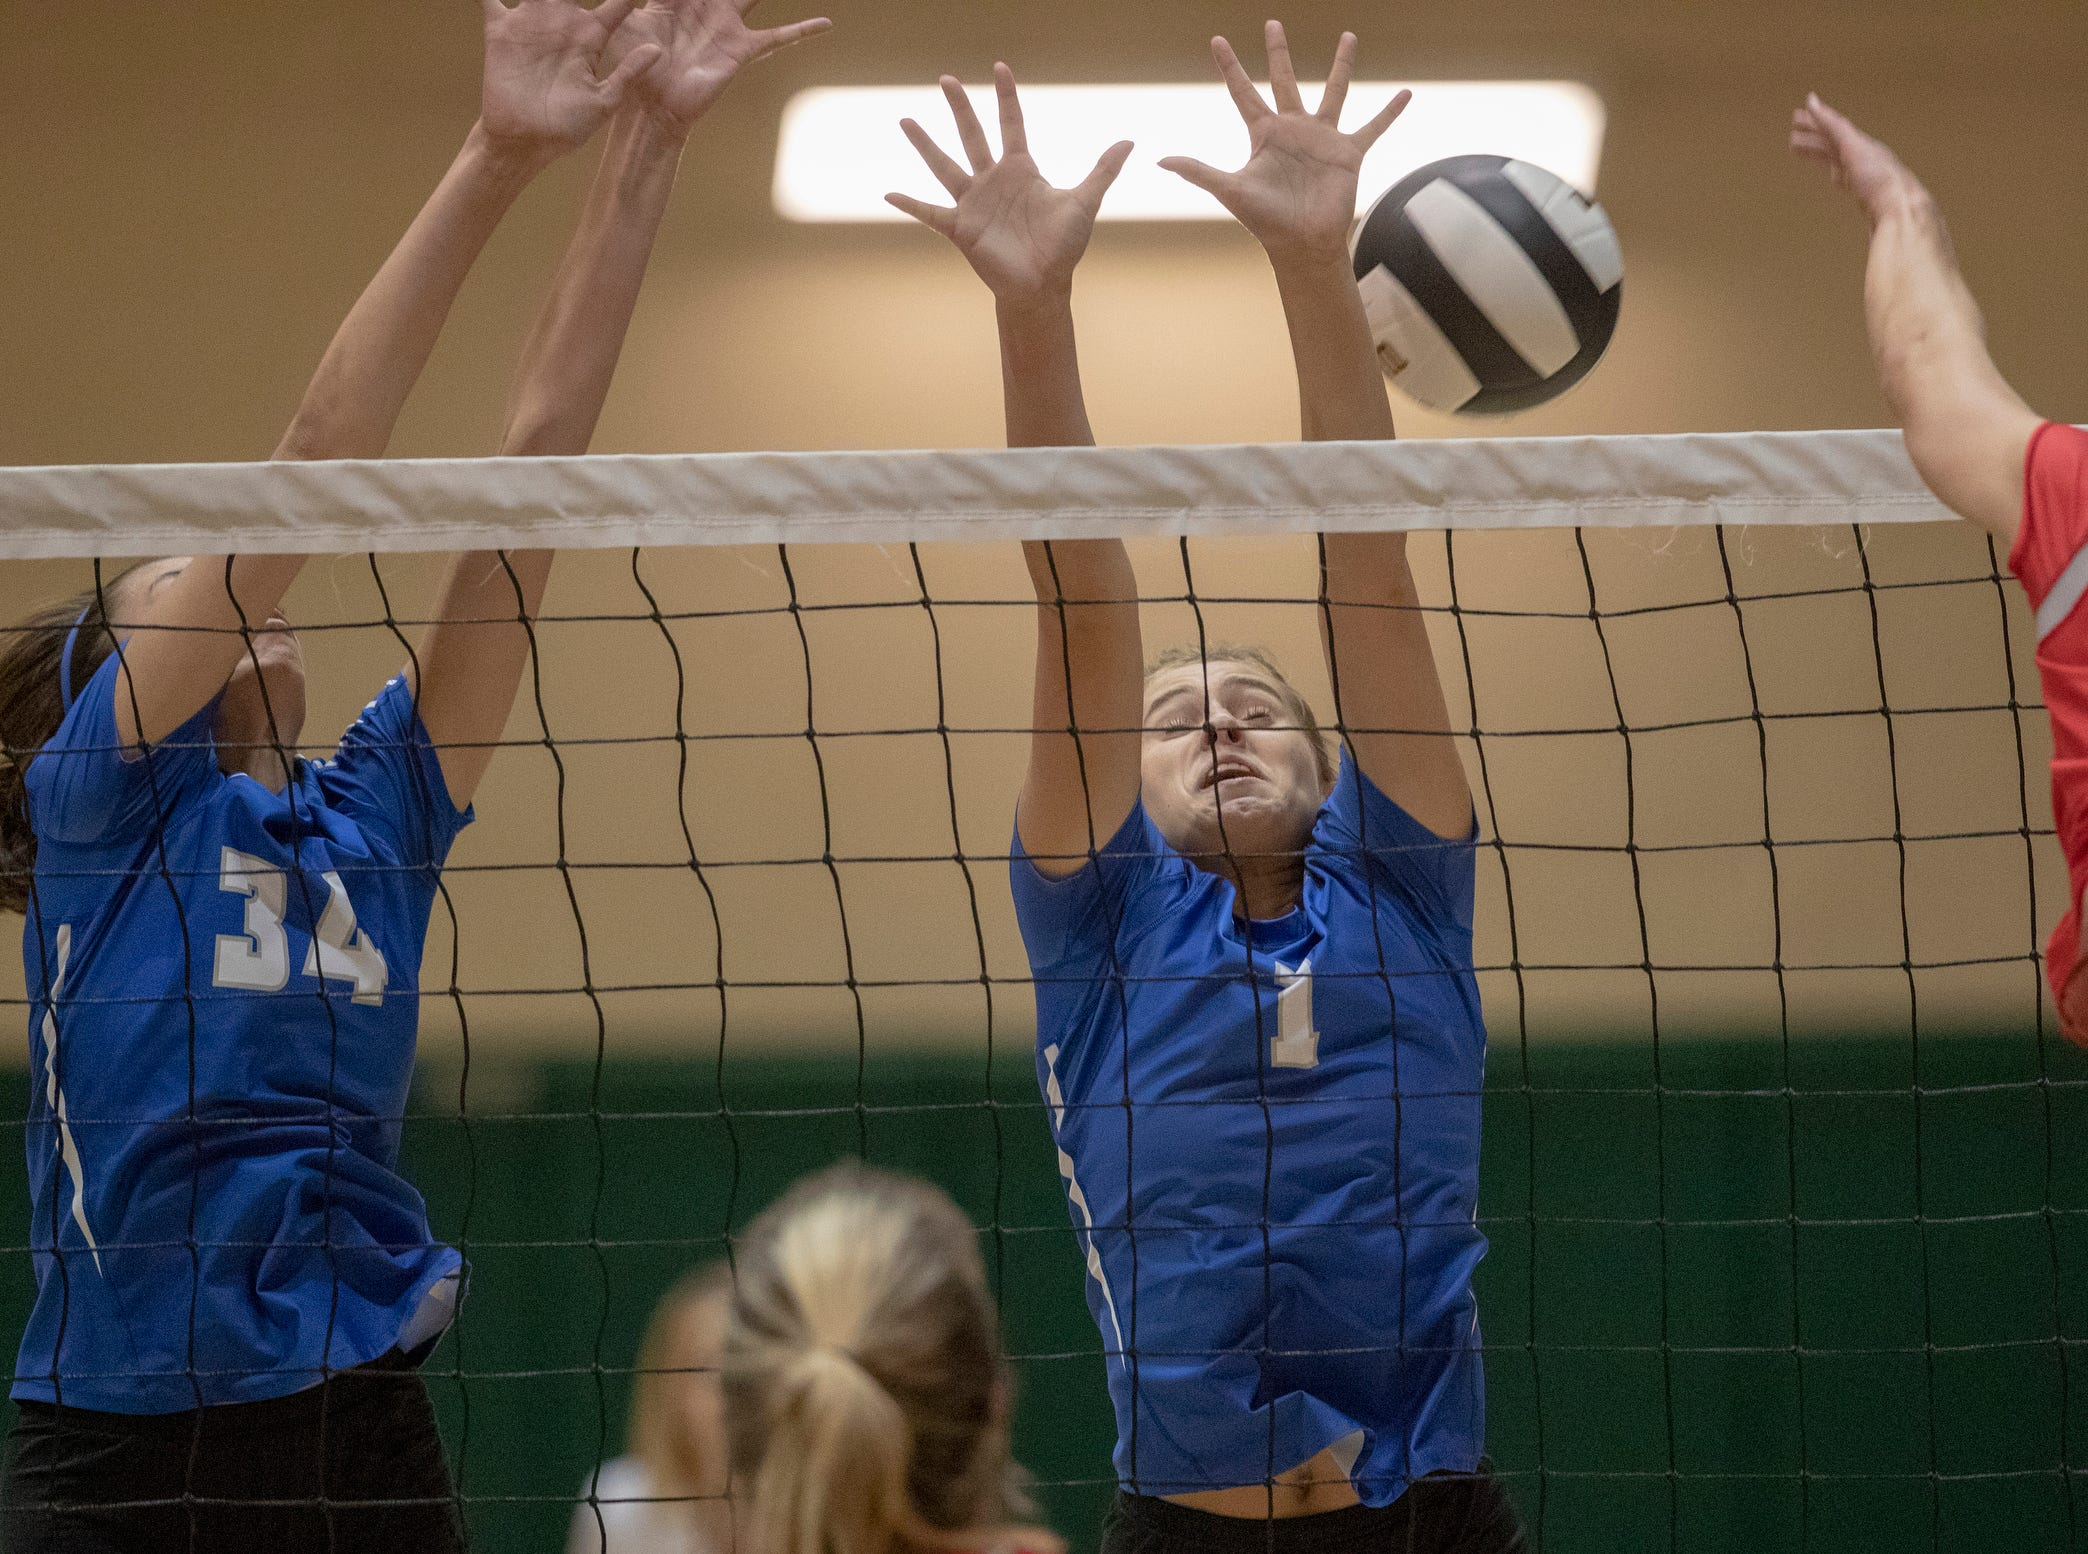 Maddie Cole (left), and Hamilton Southeastern High School teammate Grace Hunter play defense against Fishers High School, losing to FHS in three straight sets in the first round of the volleyball sectional at Westfield High School, Westfield, Thursday, Oct. 11, 2018. The win matches them up with Westfield High School for a game on Saturday morning at 11a.m.